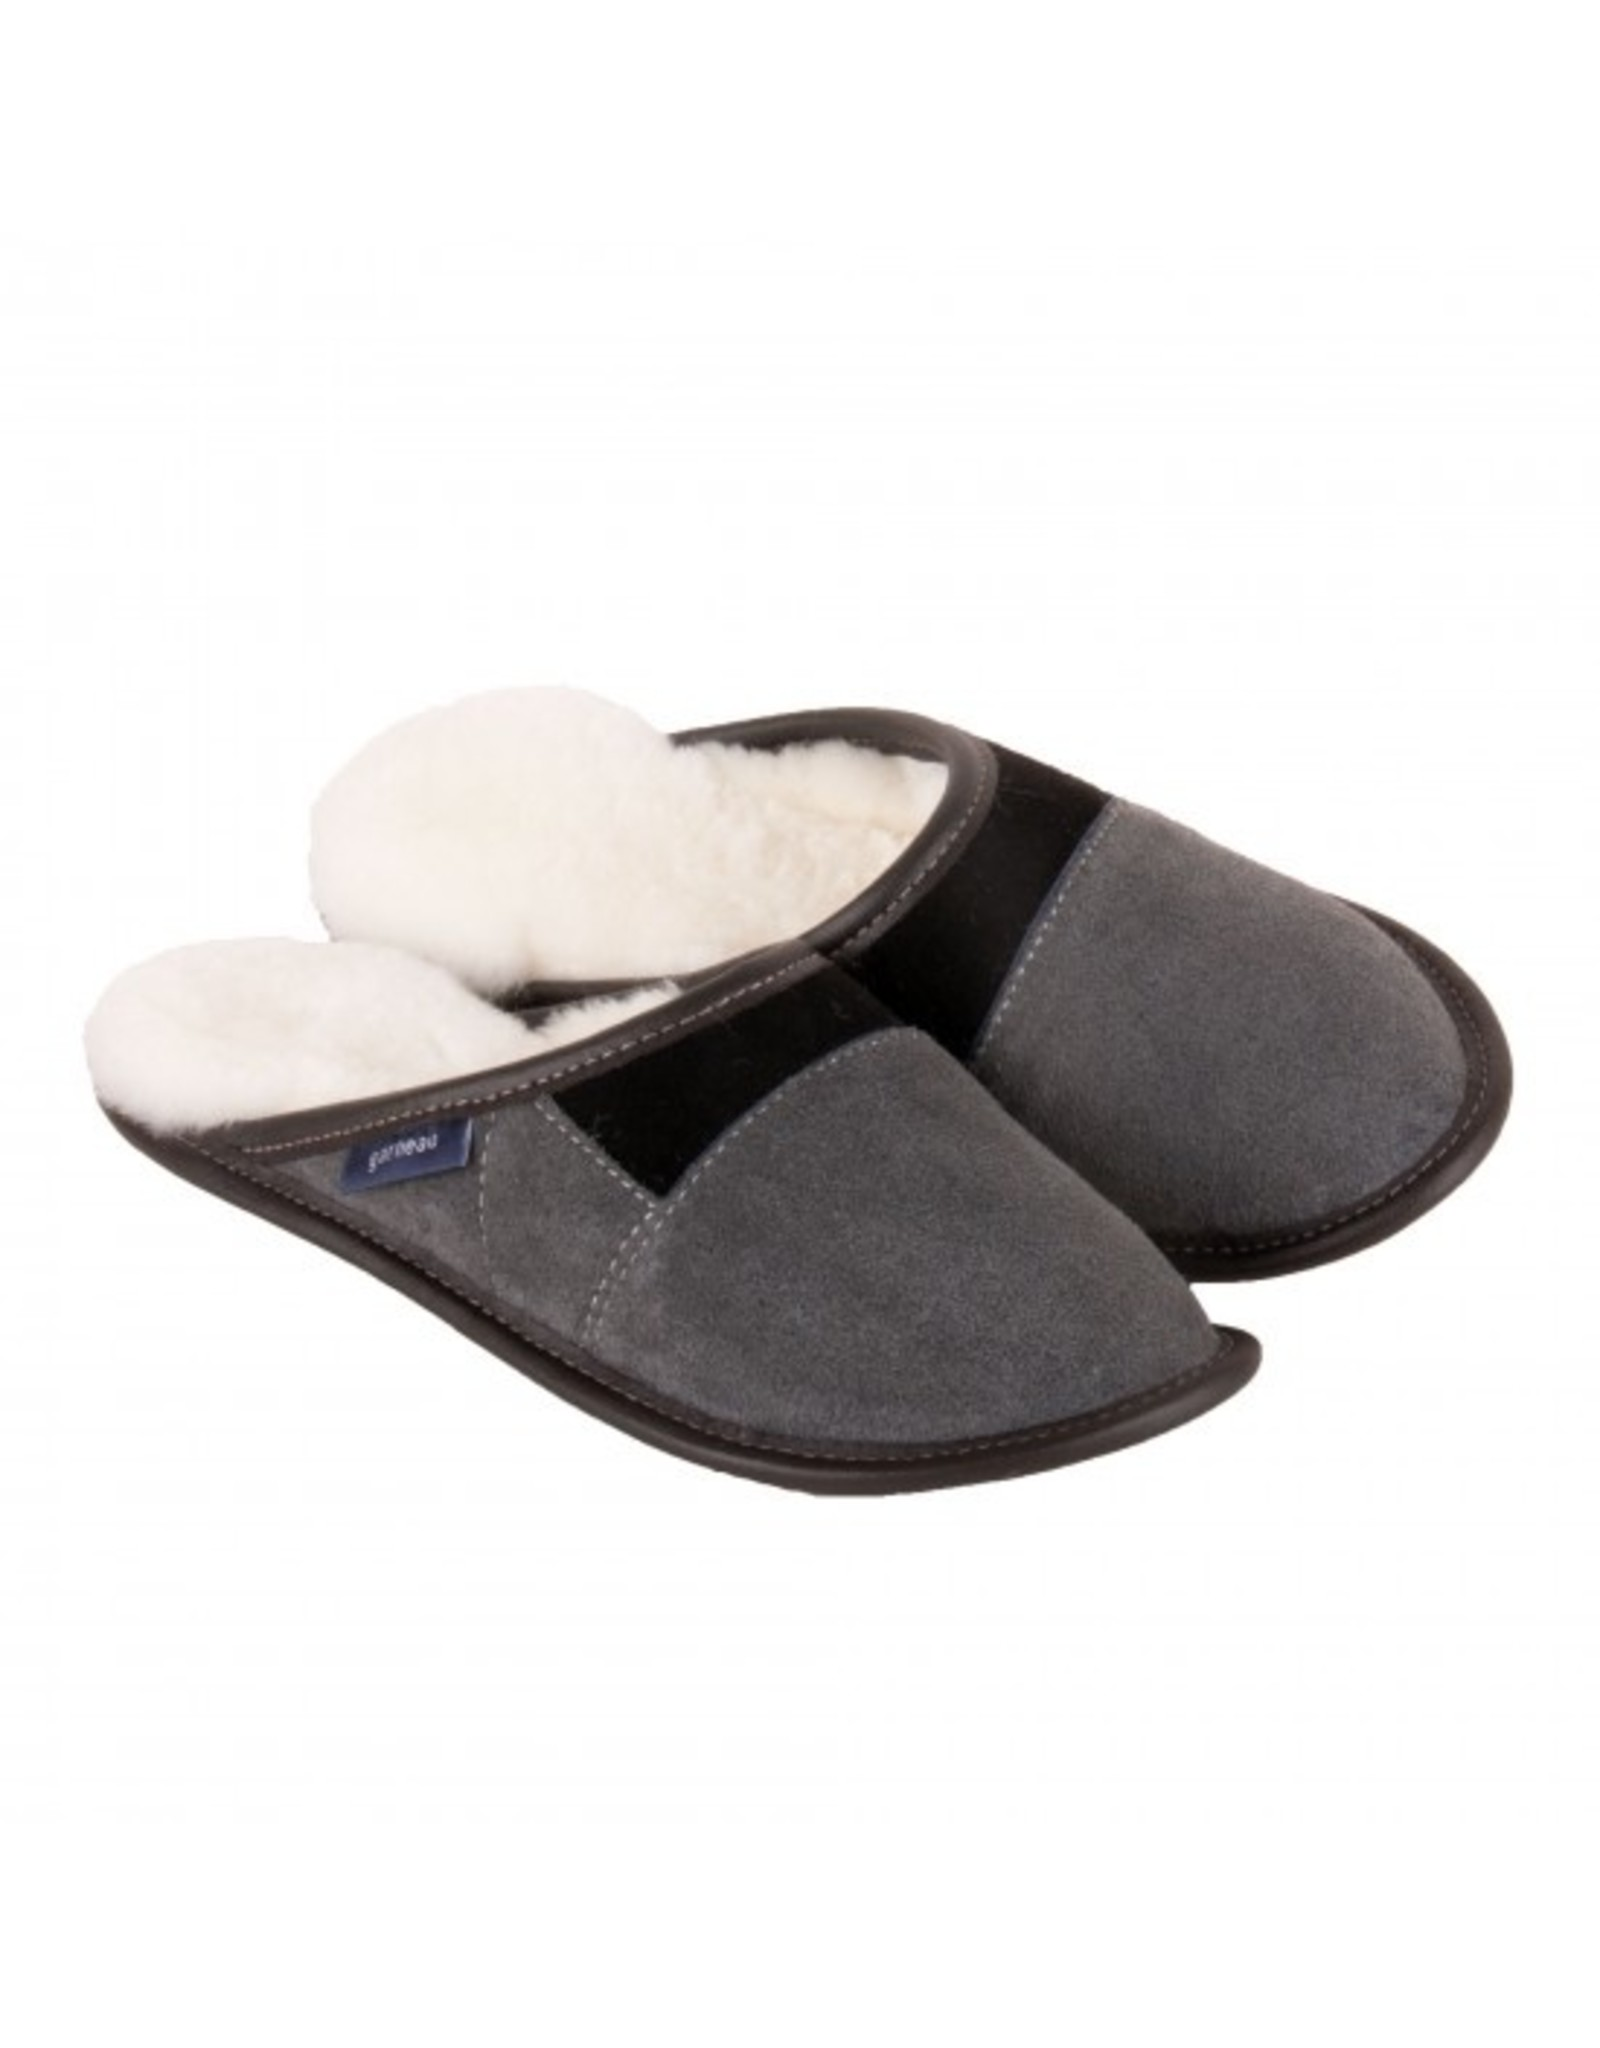 All-purpose mule slippers - Made in Quebec